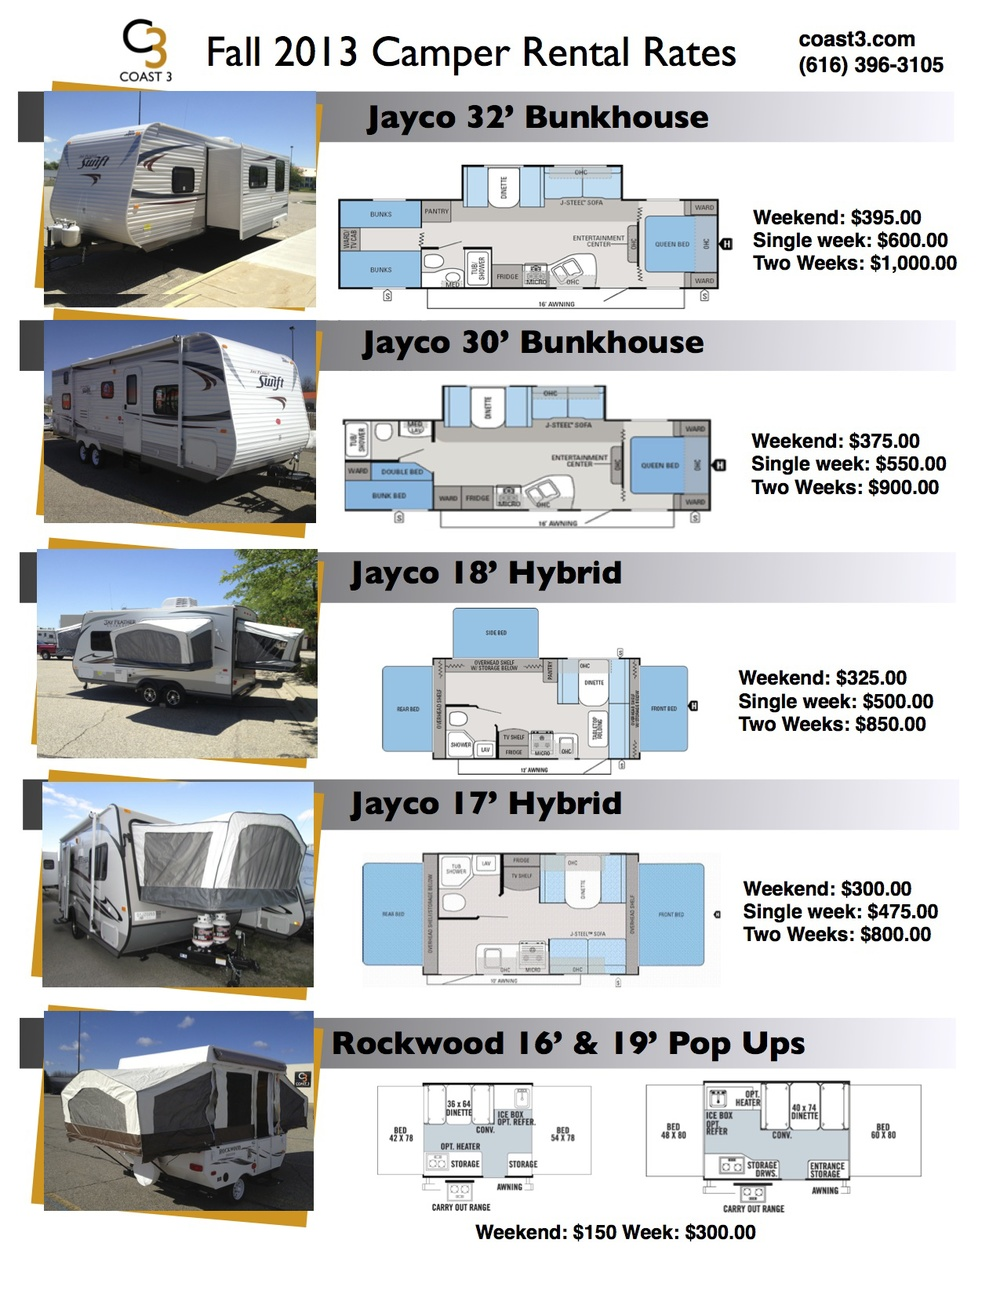 Fall 2013 Camper Rates .jpg